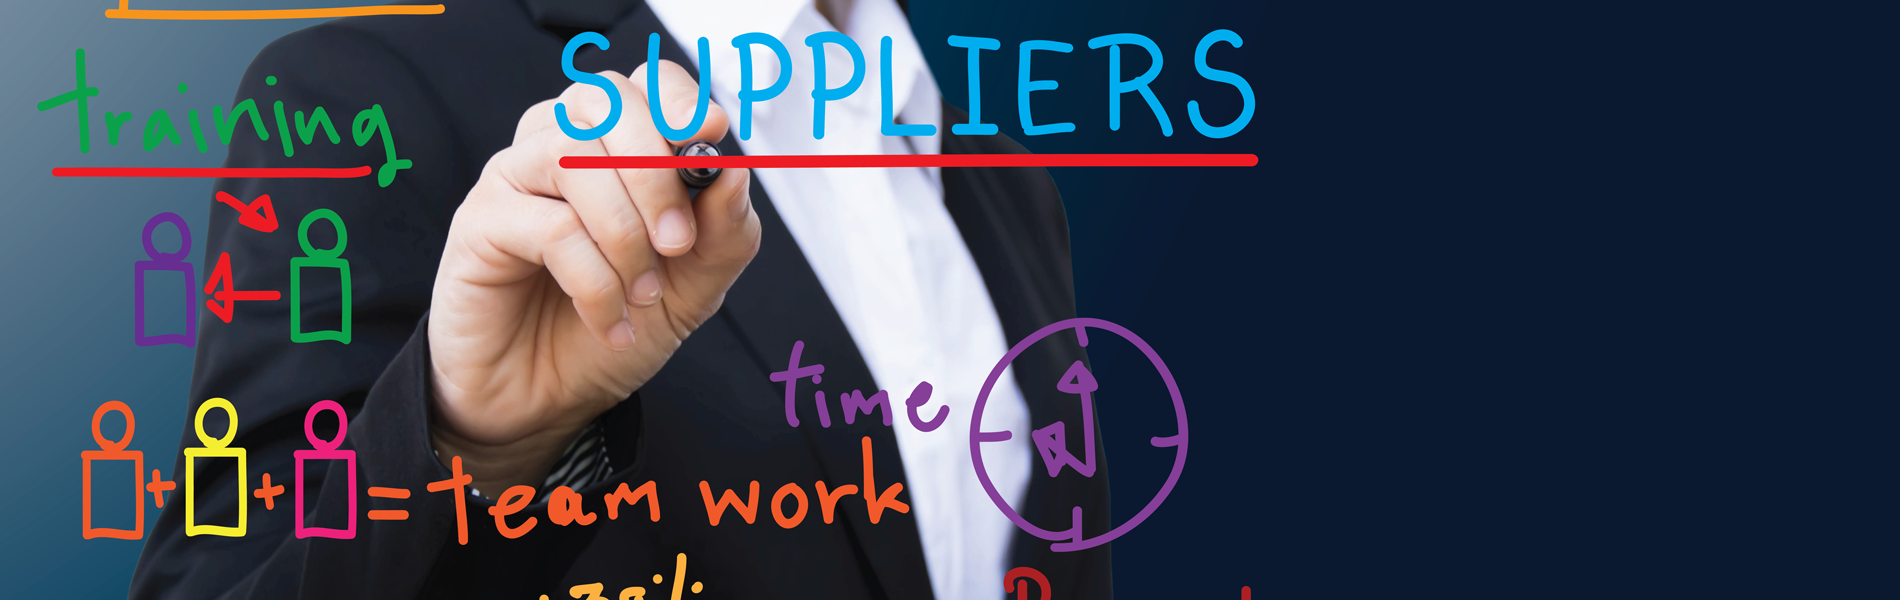 8 factors a CEM should know about their suppliers